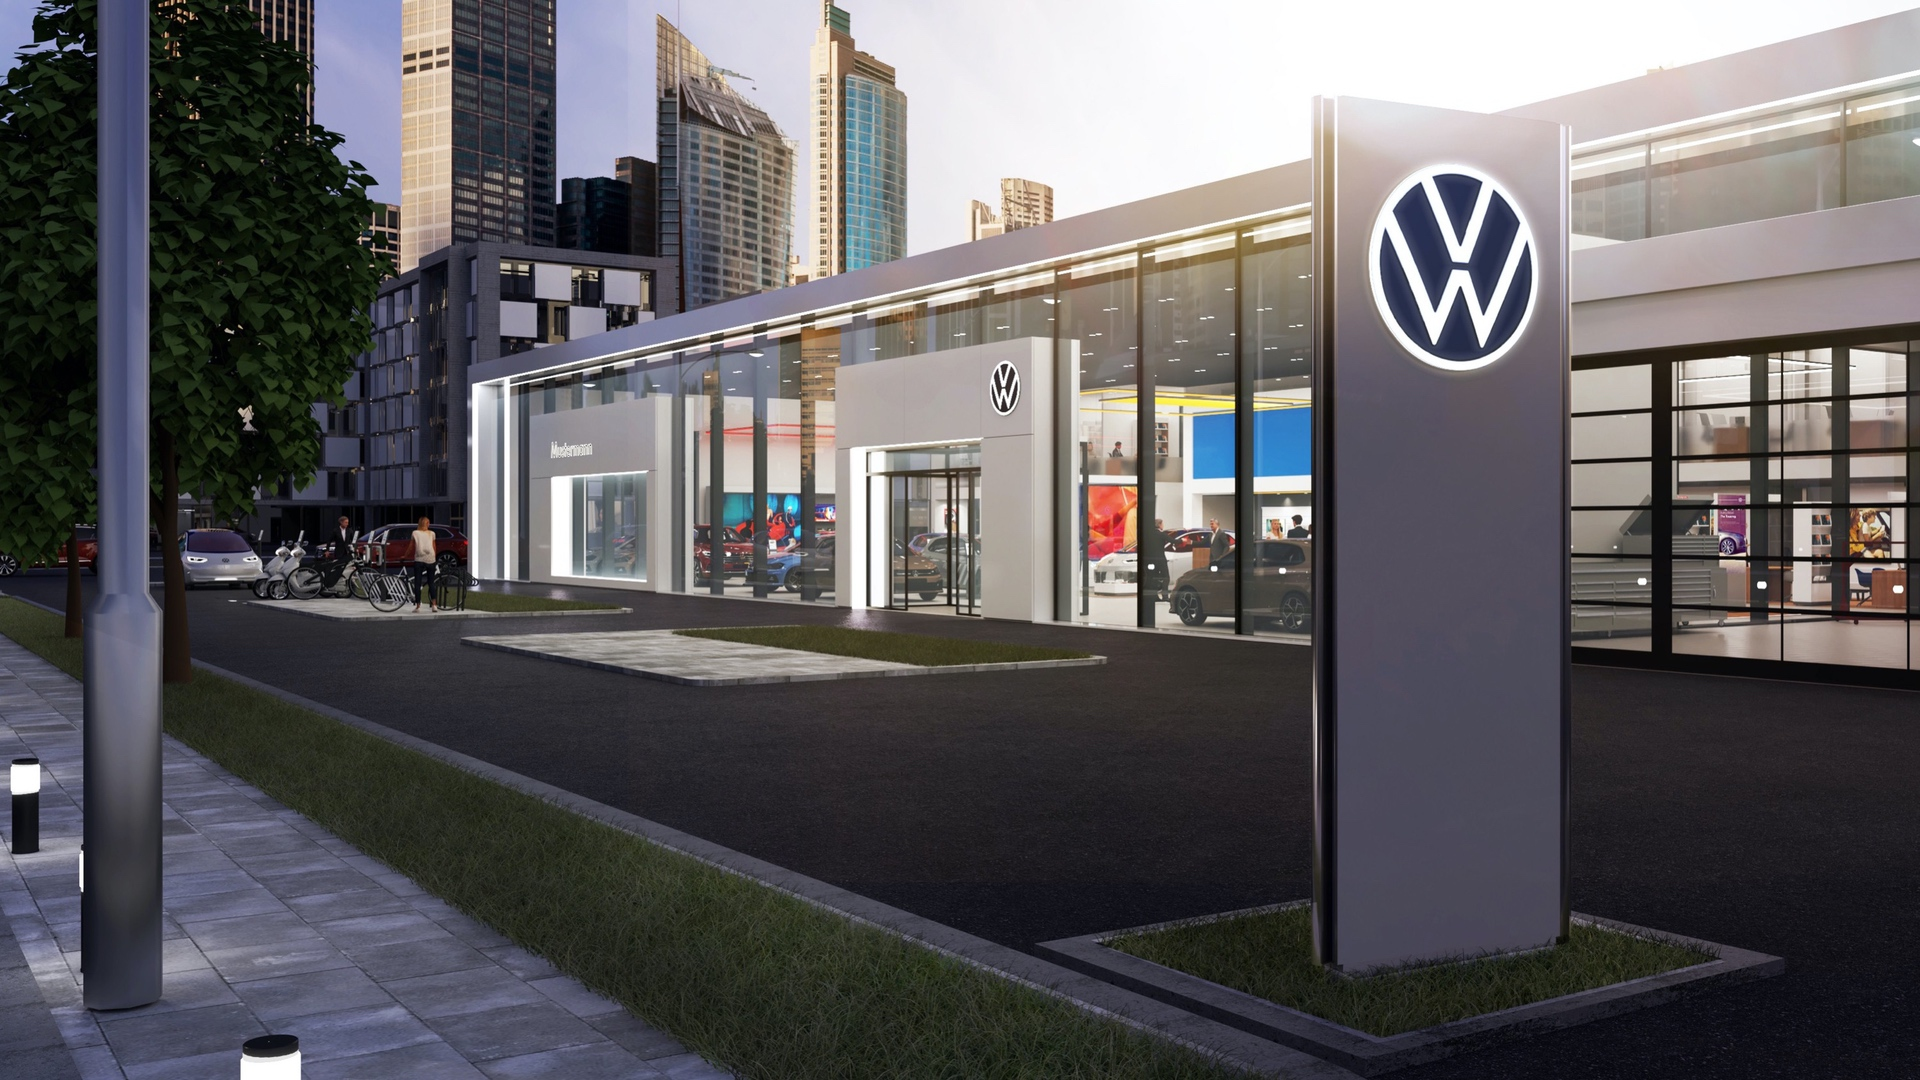 New_VW_logo_0015